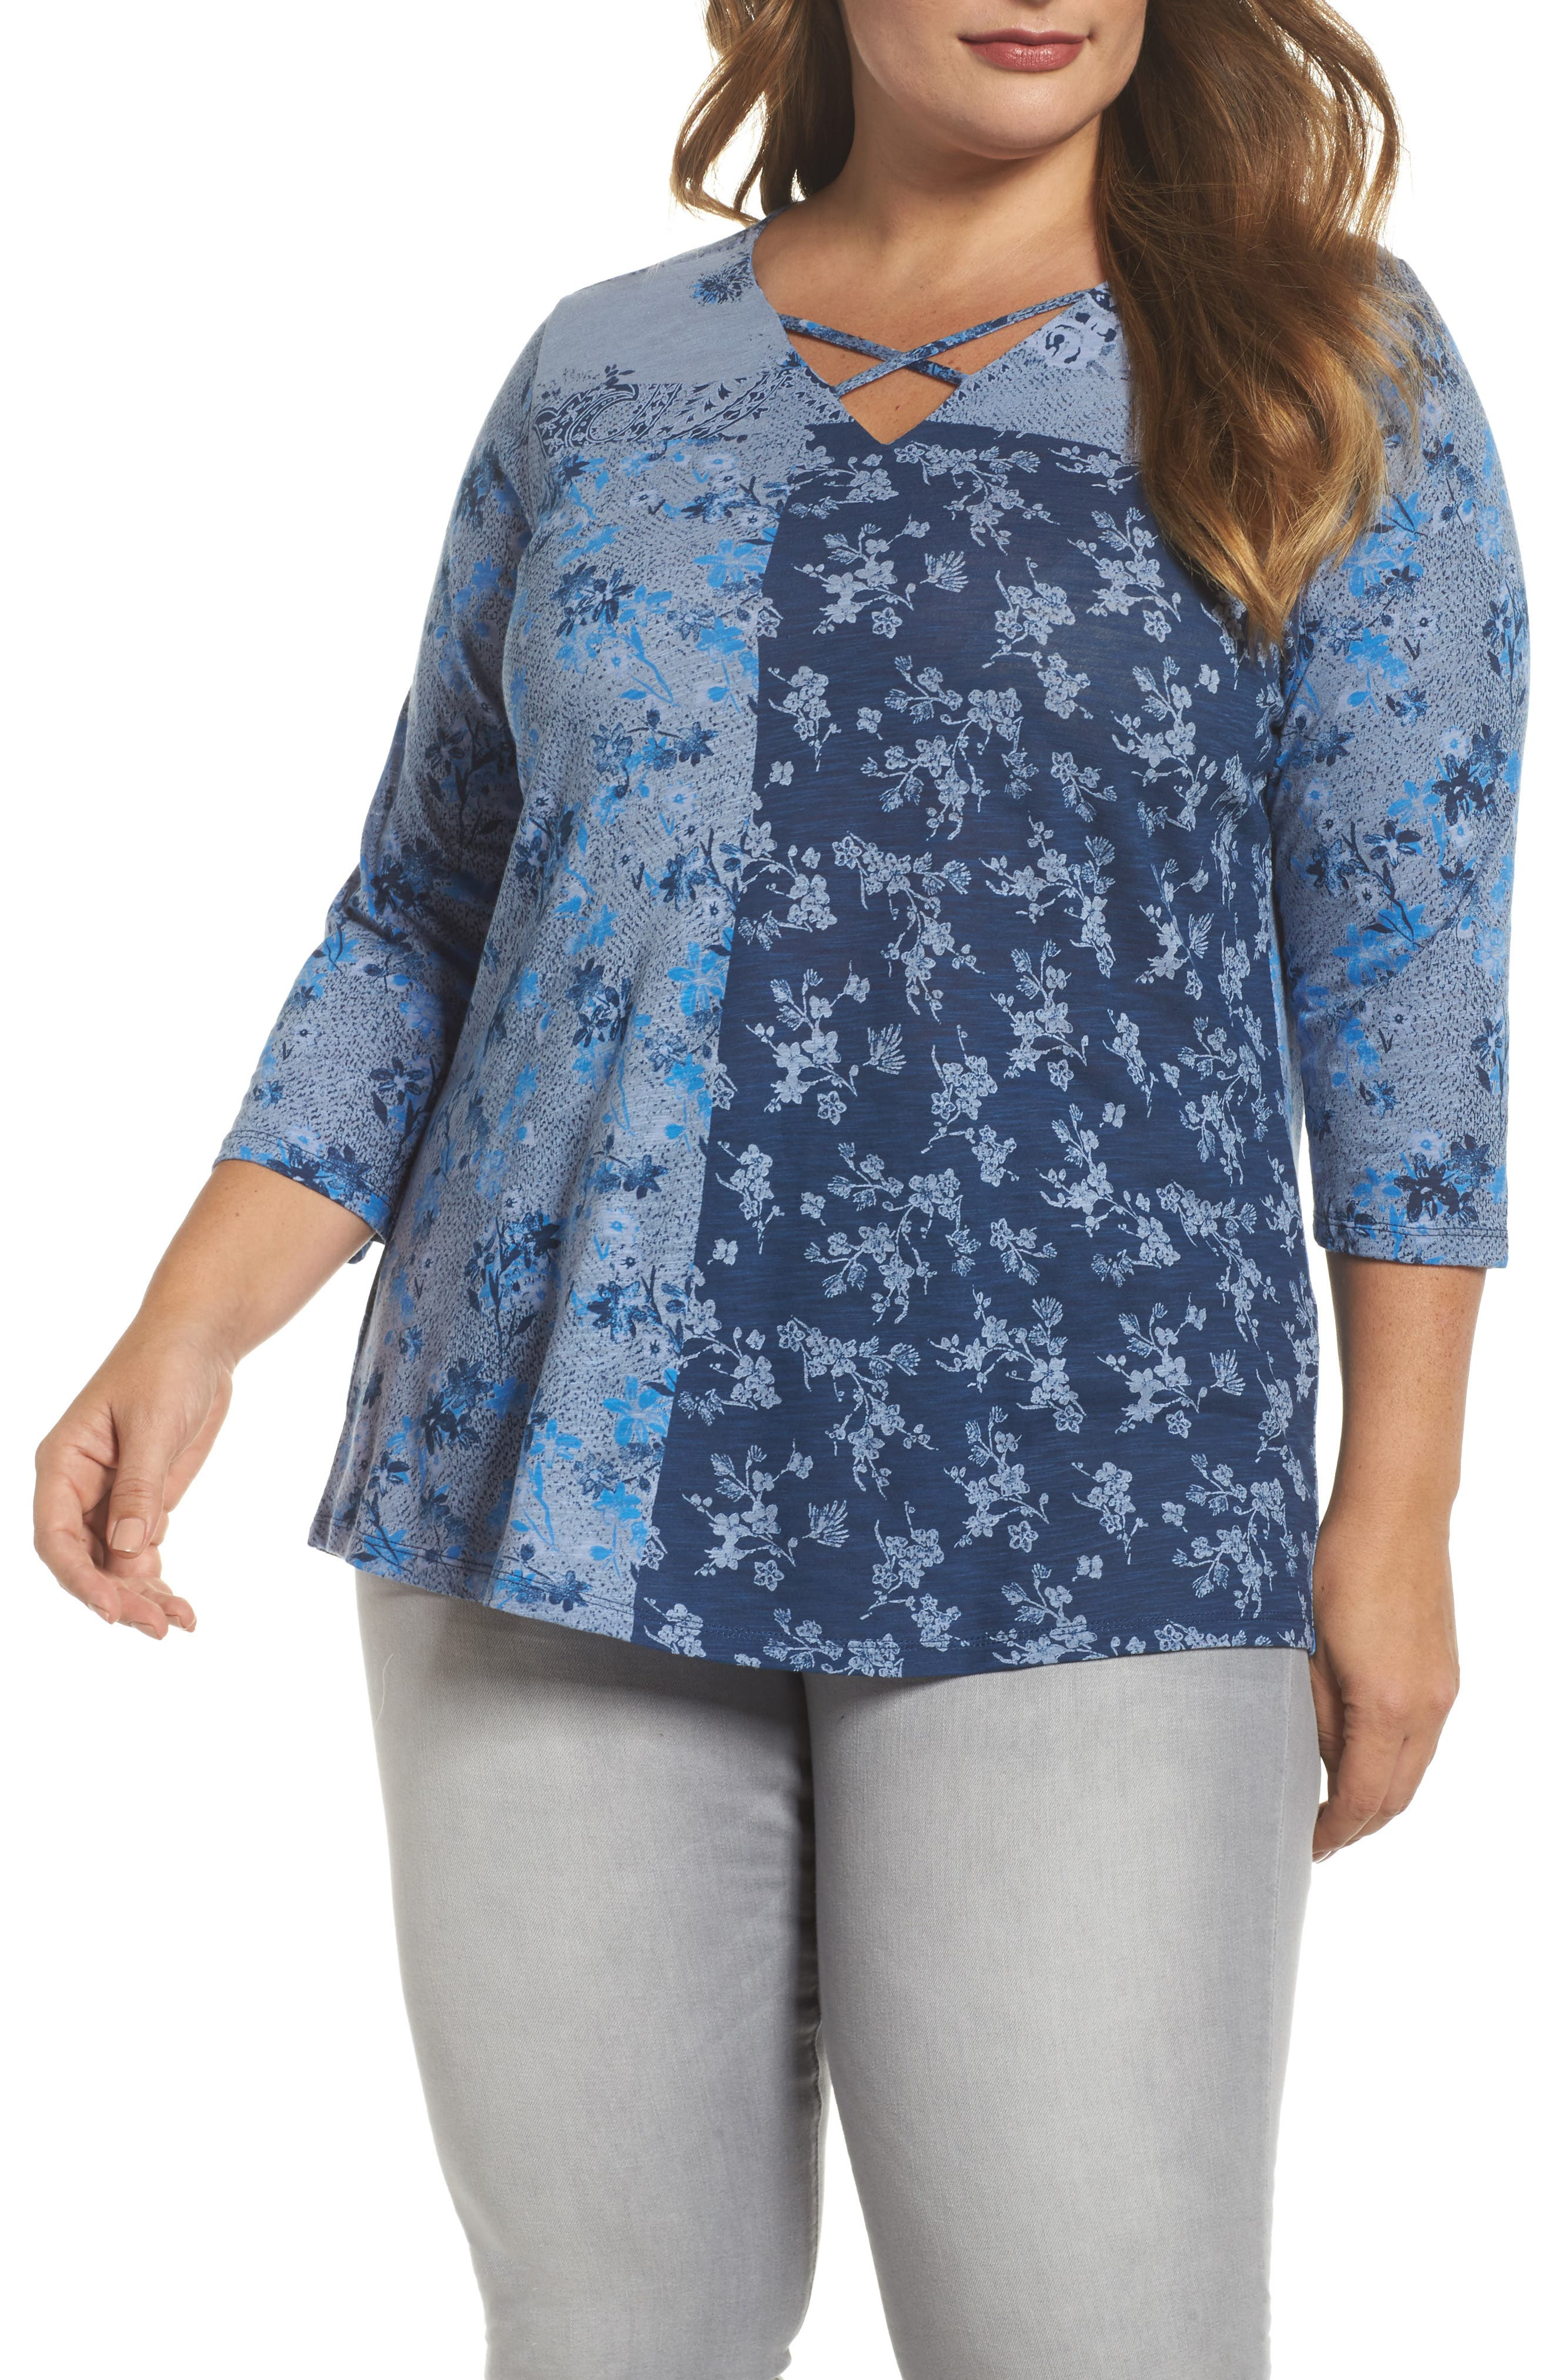 Main Image - Lucky Brand Madeline Floral Top (Plus Size)